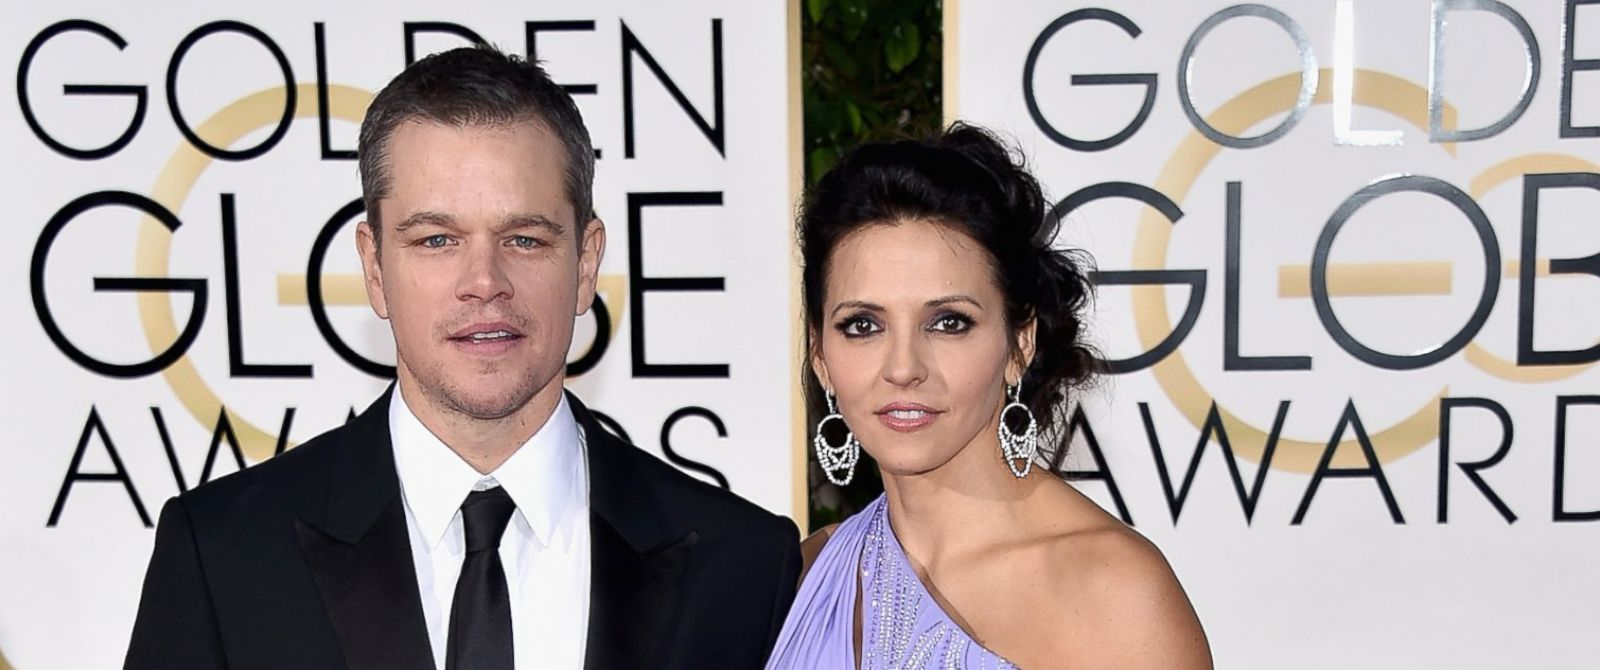 PHOTO: Matt Damon and Luciana Damon attend the 73rd Annual Golden Globe Awards held at the Beverly Hilton Hotel, Jan. 10, 2016, in Beverly Hills, Calif.